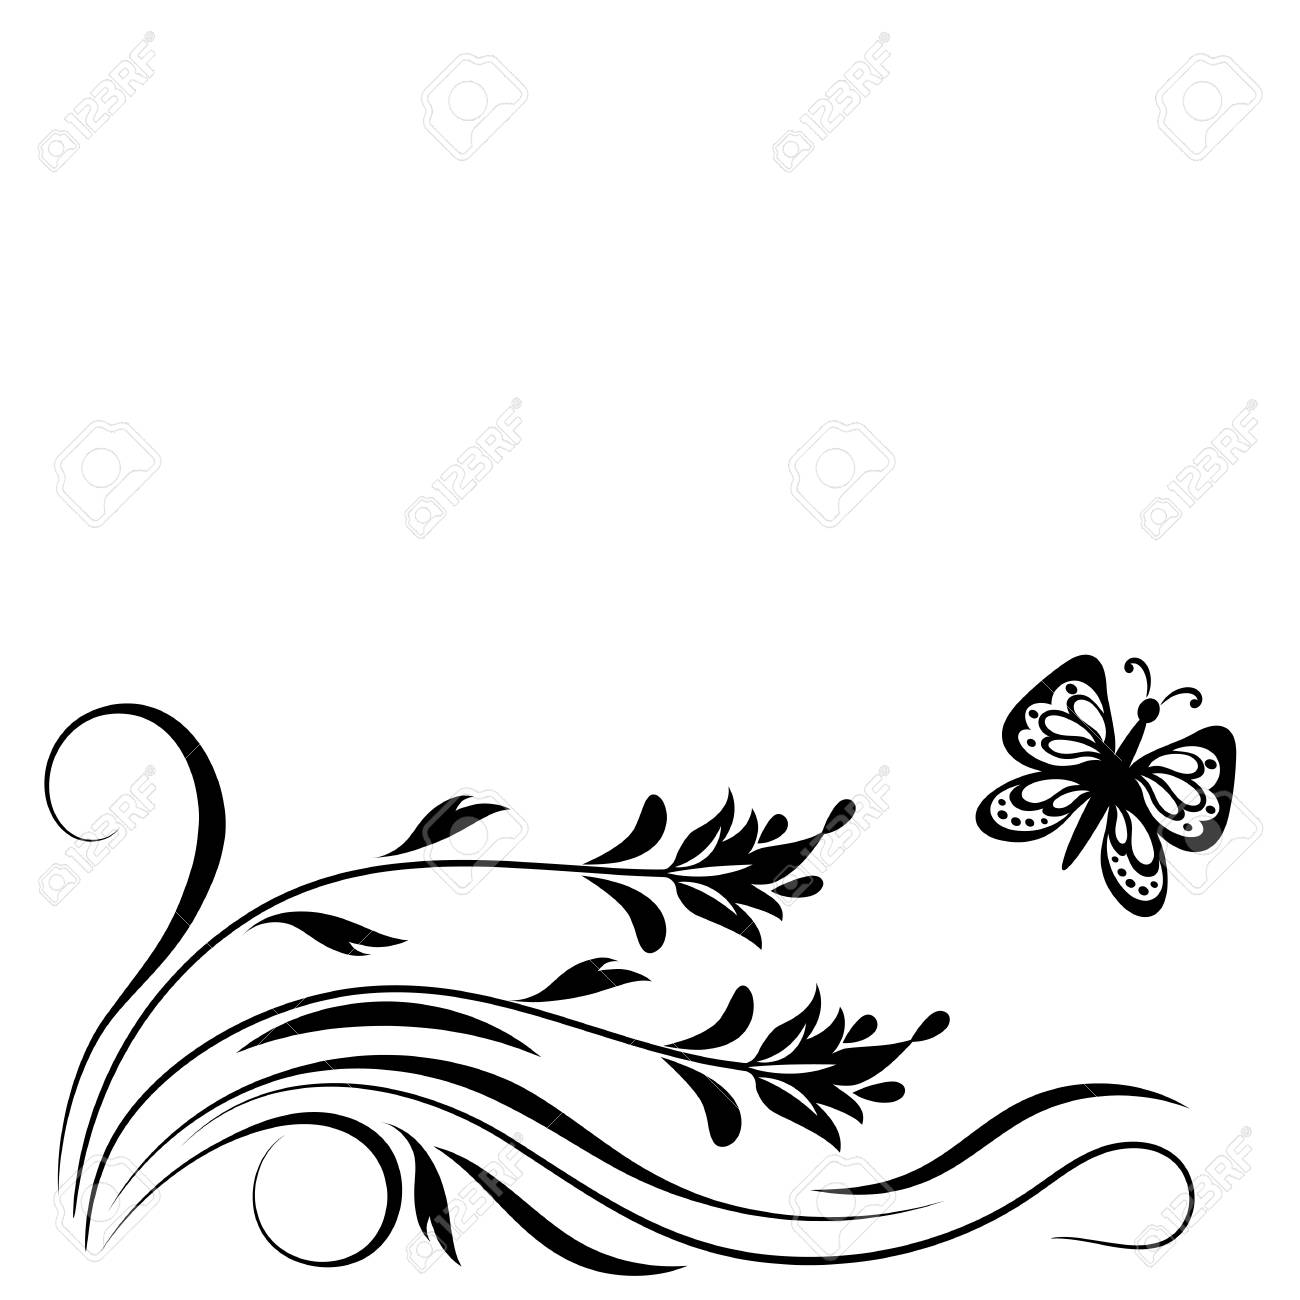 decorative floral corner ornament with flowers and butterfly royalty free cliparts vectors and stock illustration image 82895076 decorative floral corner ornament with flowers and butterfly